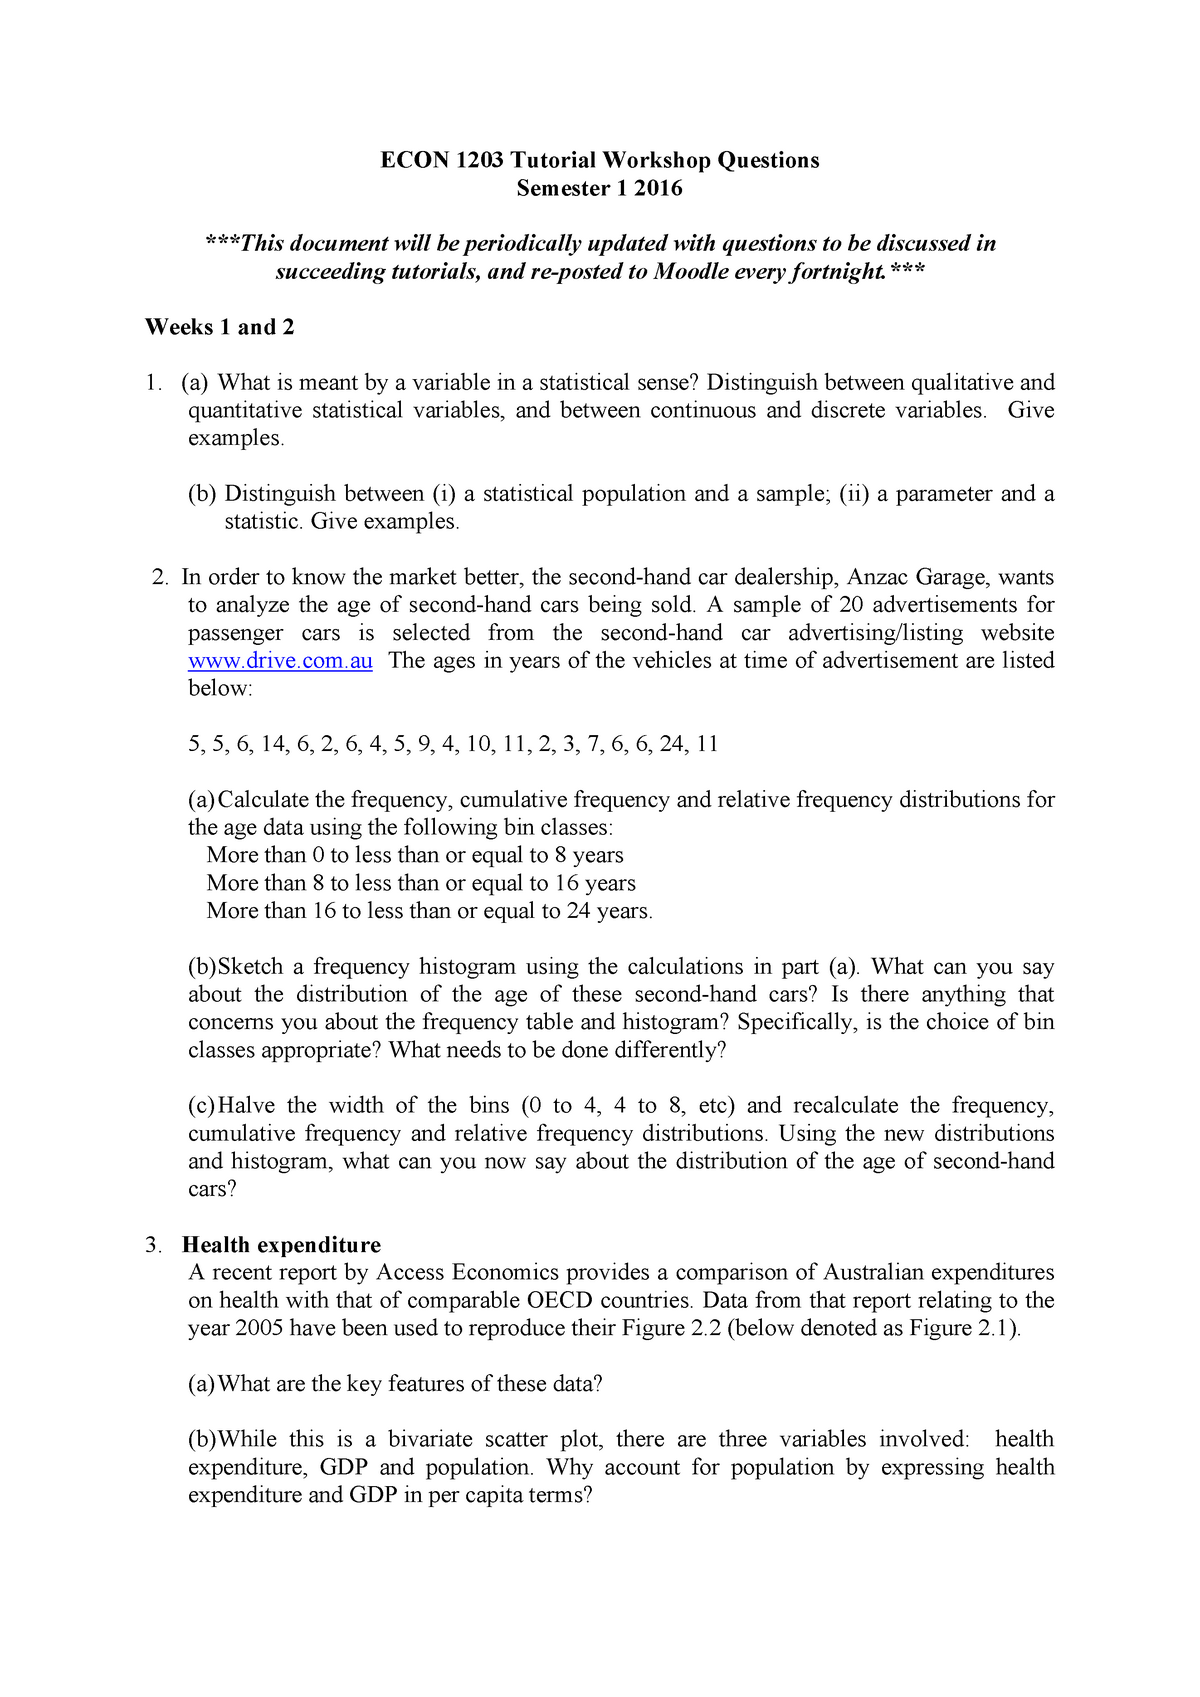 Tutorial Workshop Questions s1 2016 - ECON1203: Business and